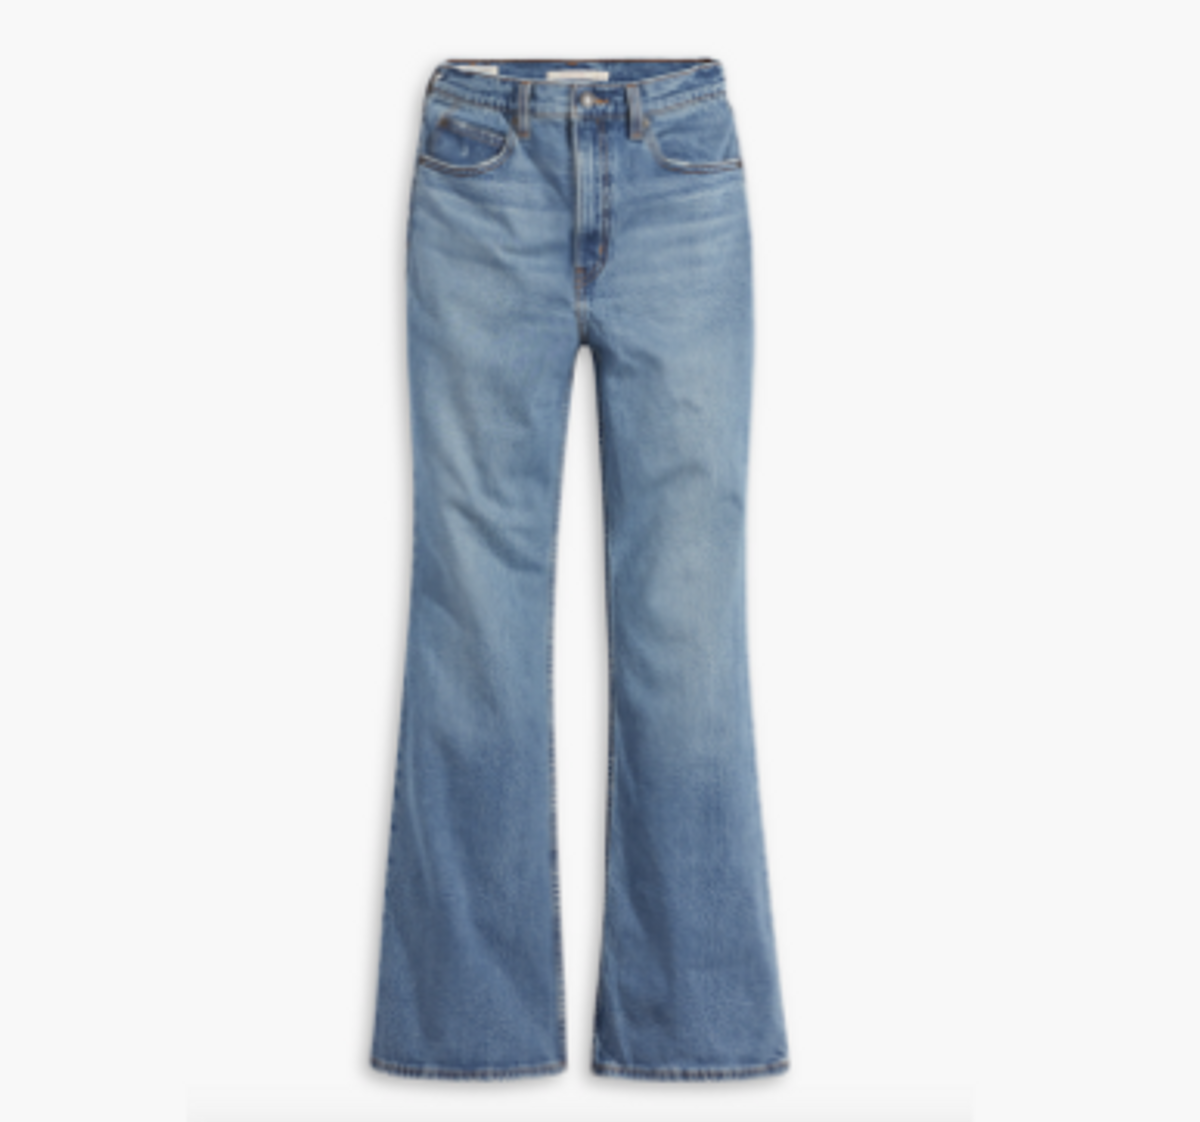 70's High Rise Women's Flare Jeans